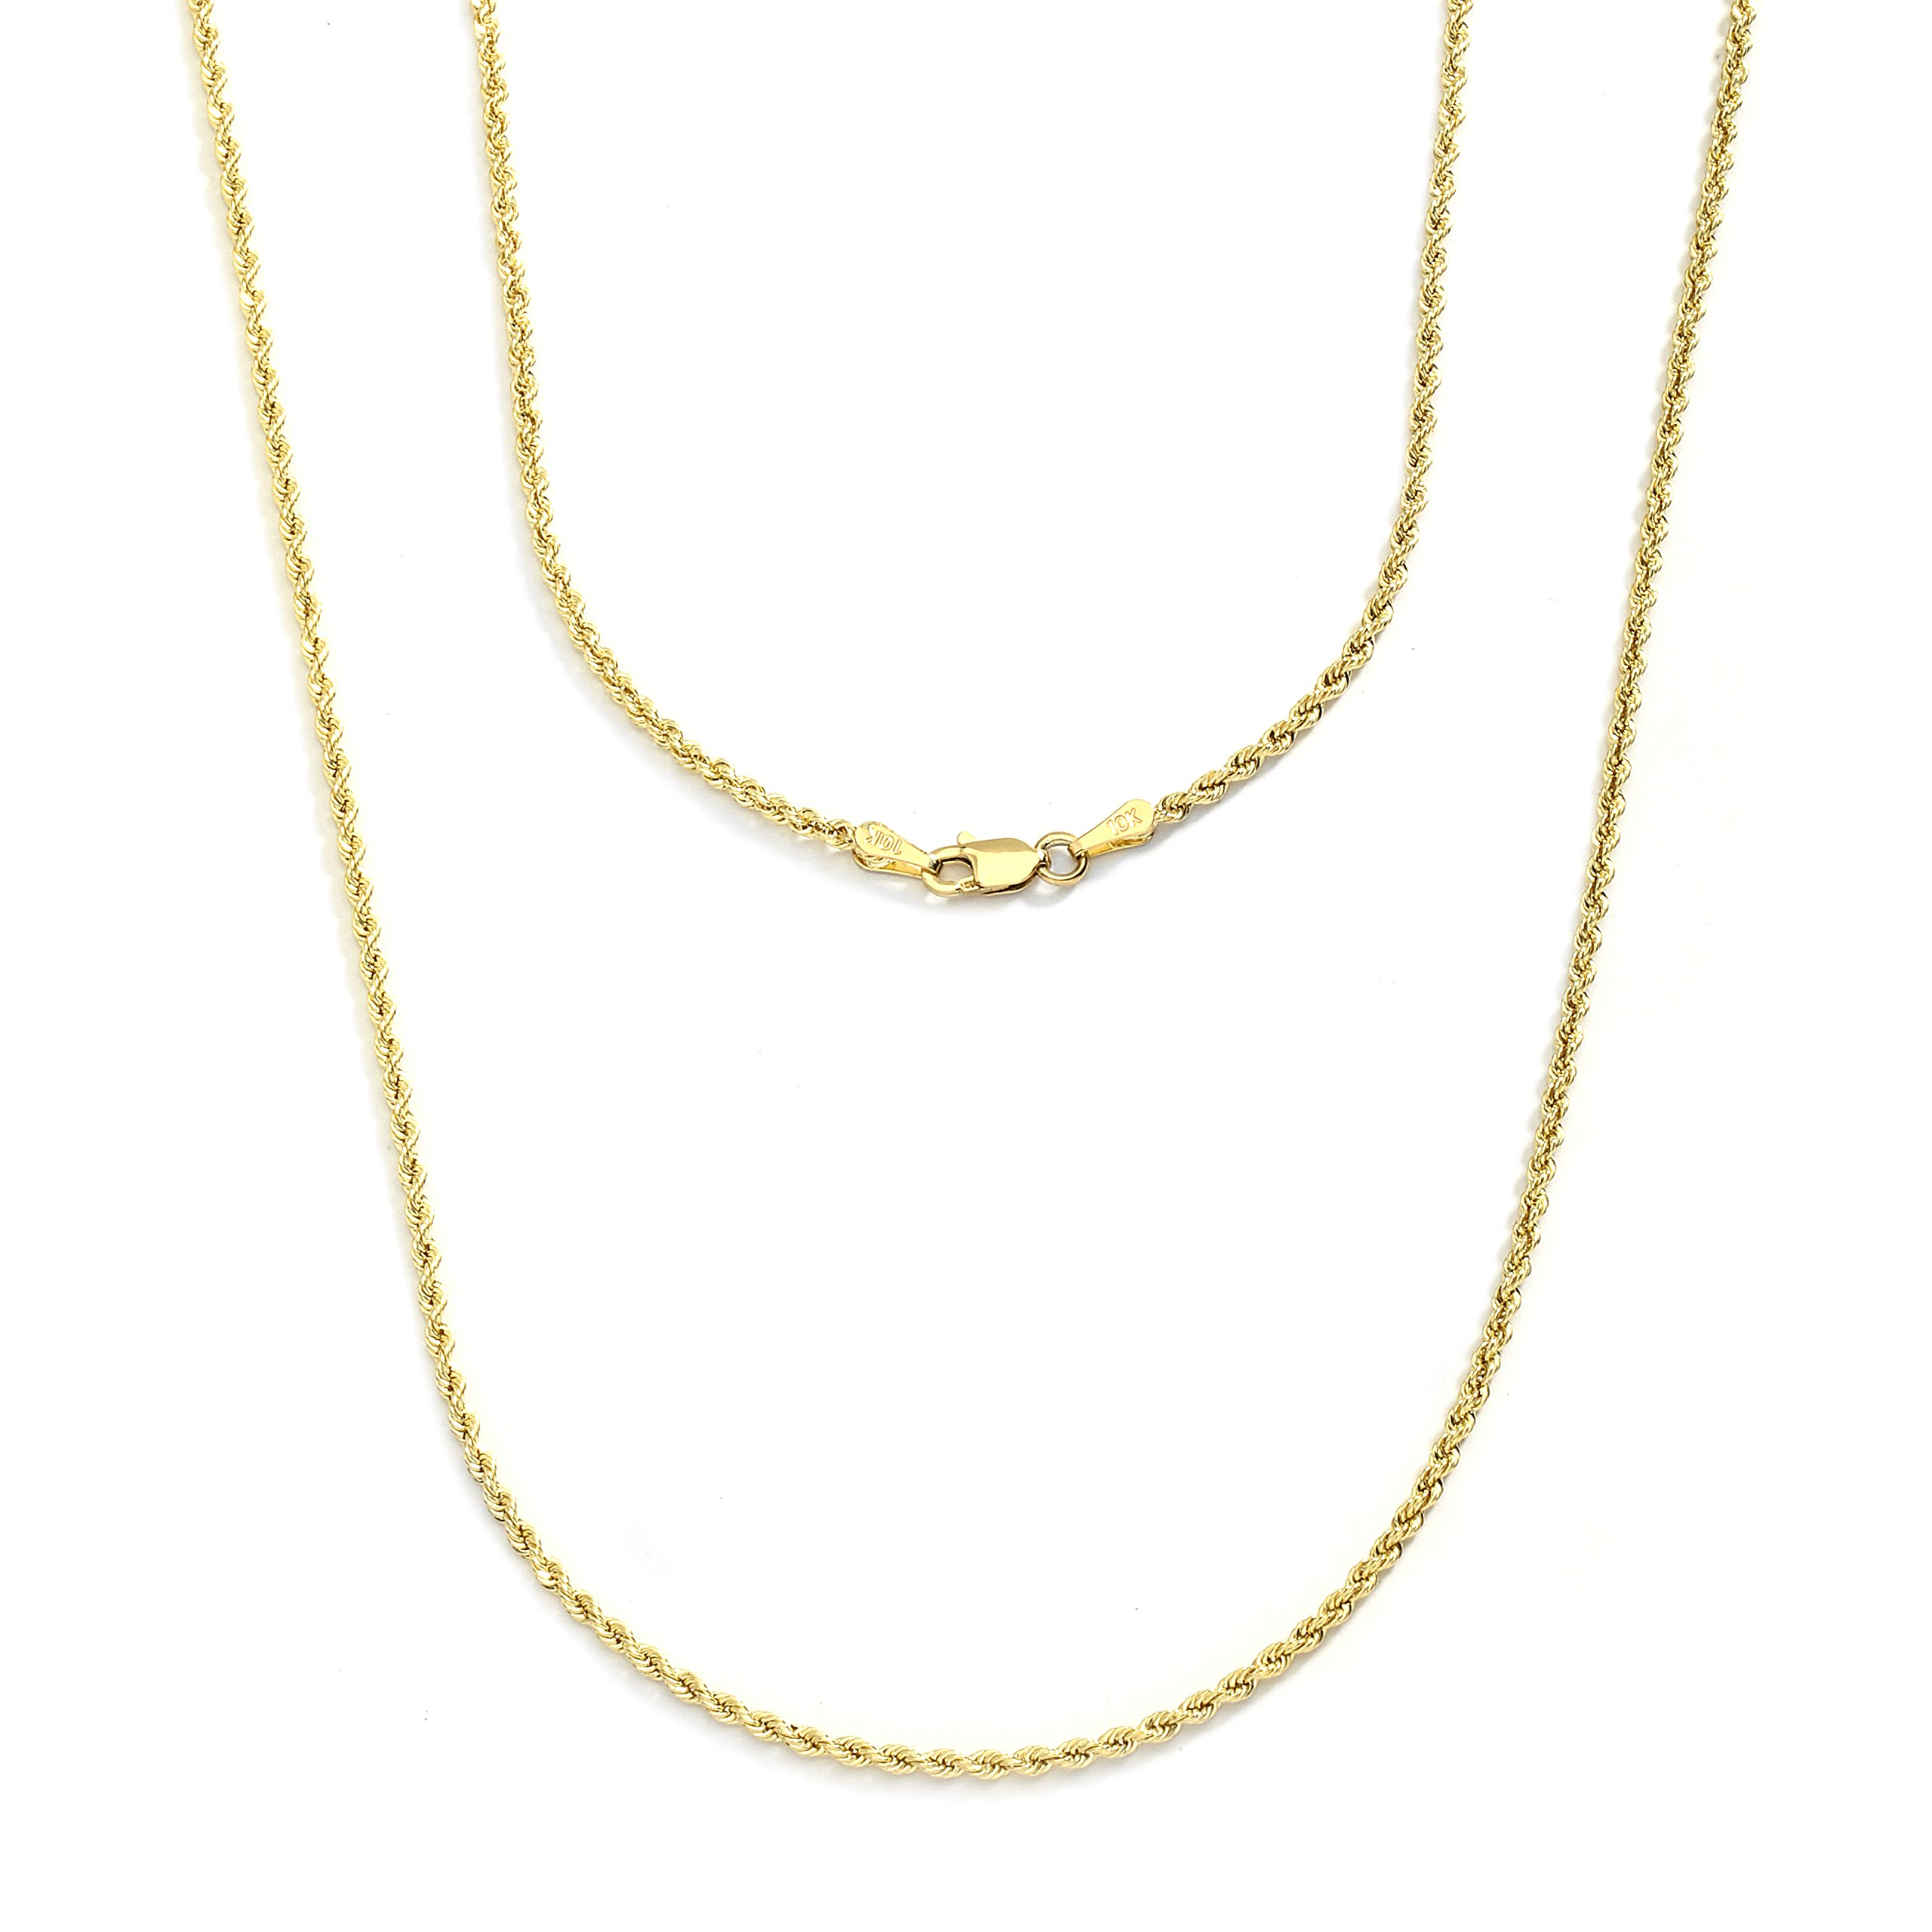 18 Inch 10k Yellow Gold Hollow Rope Chain Necklace with Lobster Claw Clasp for Women and Men, 2mm by SL Chain Collection (Image #6)